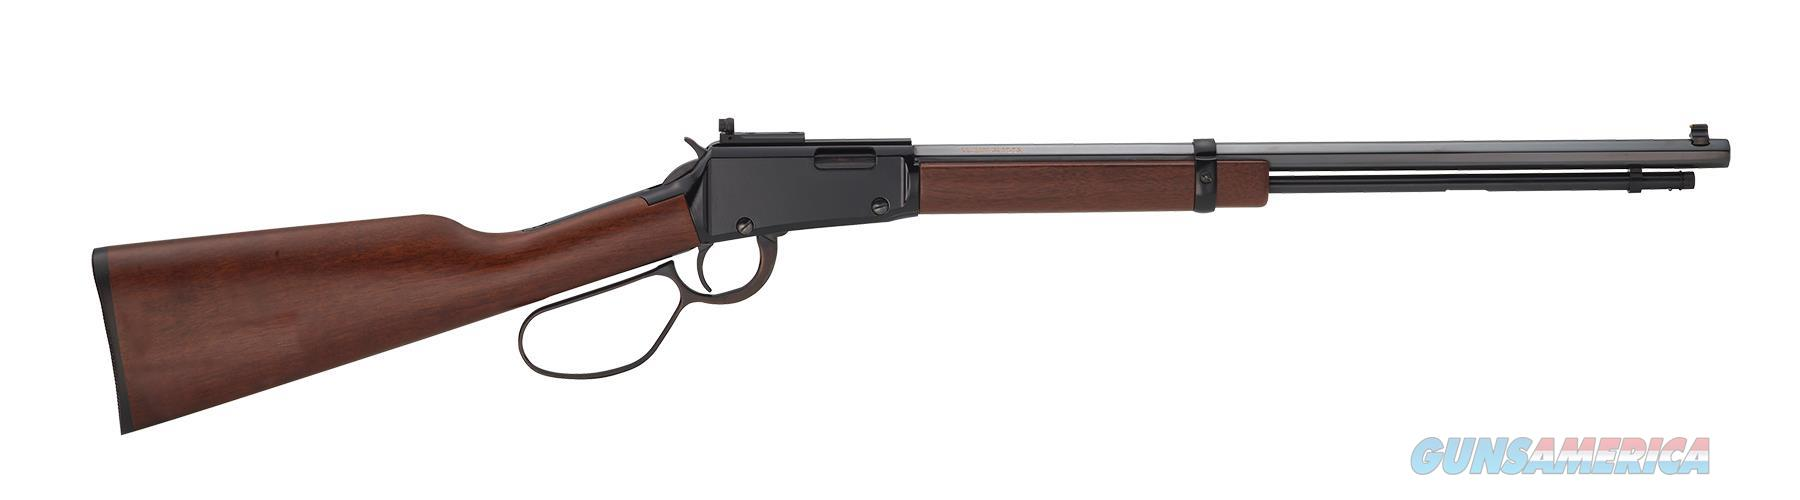 "Henry H001tlp Small Game Carbine  Lever 22 Short/Long/Long Rifle 17"" 12 Lr/16 Short American Walnut Stk Blued H001TLP  Guns > Rifles > H Misc Rifles"